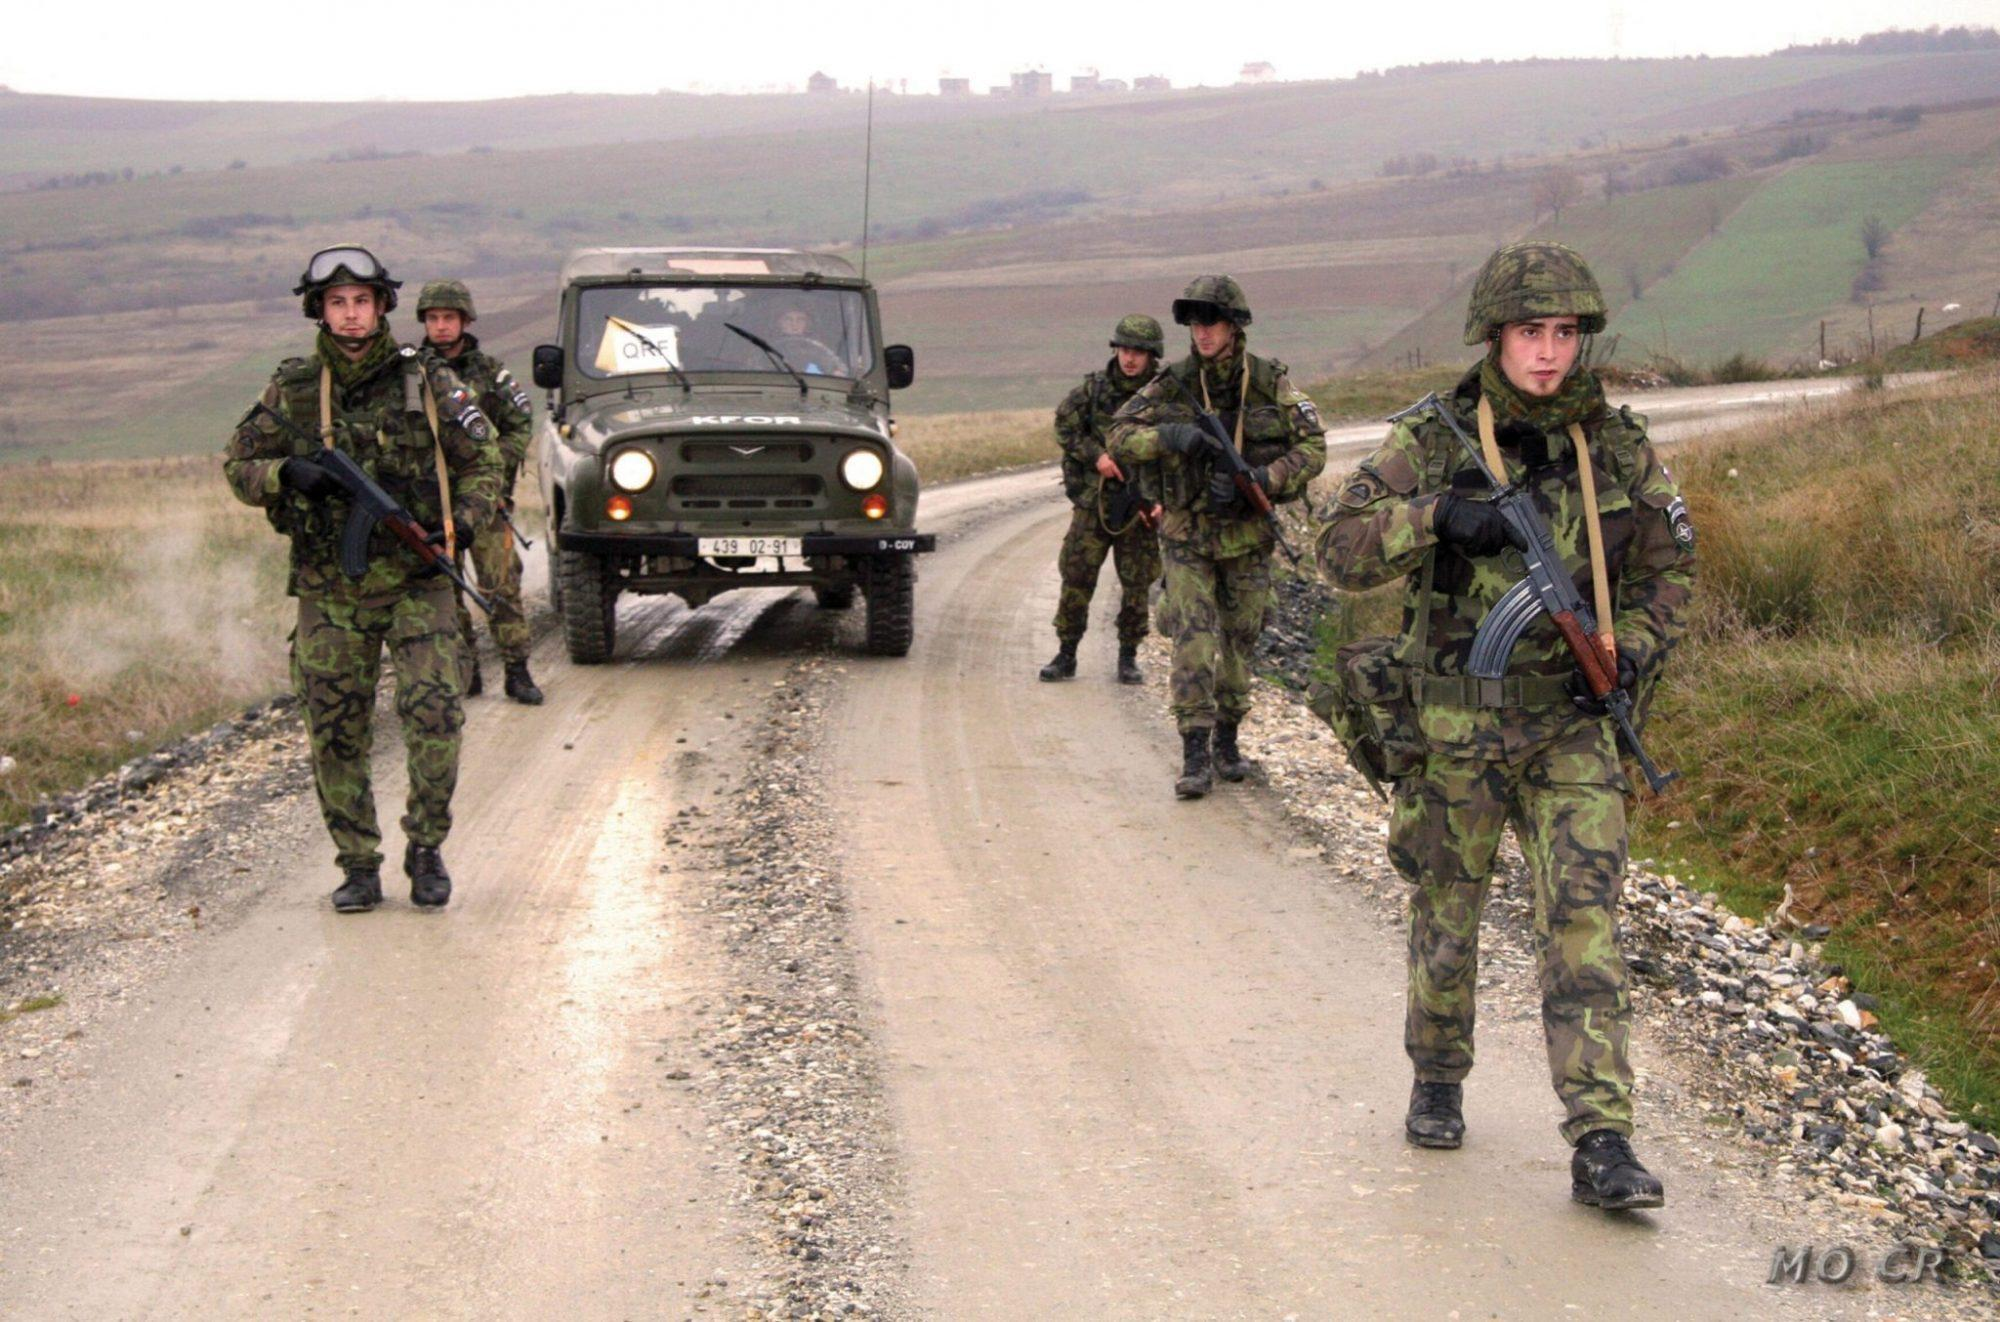 Members of the Czech Army patroling in Kosovo as part of KFOR mission. Soldiers are armed with vz. 58 assault rifles